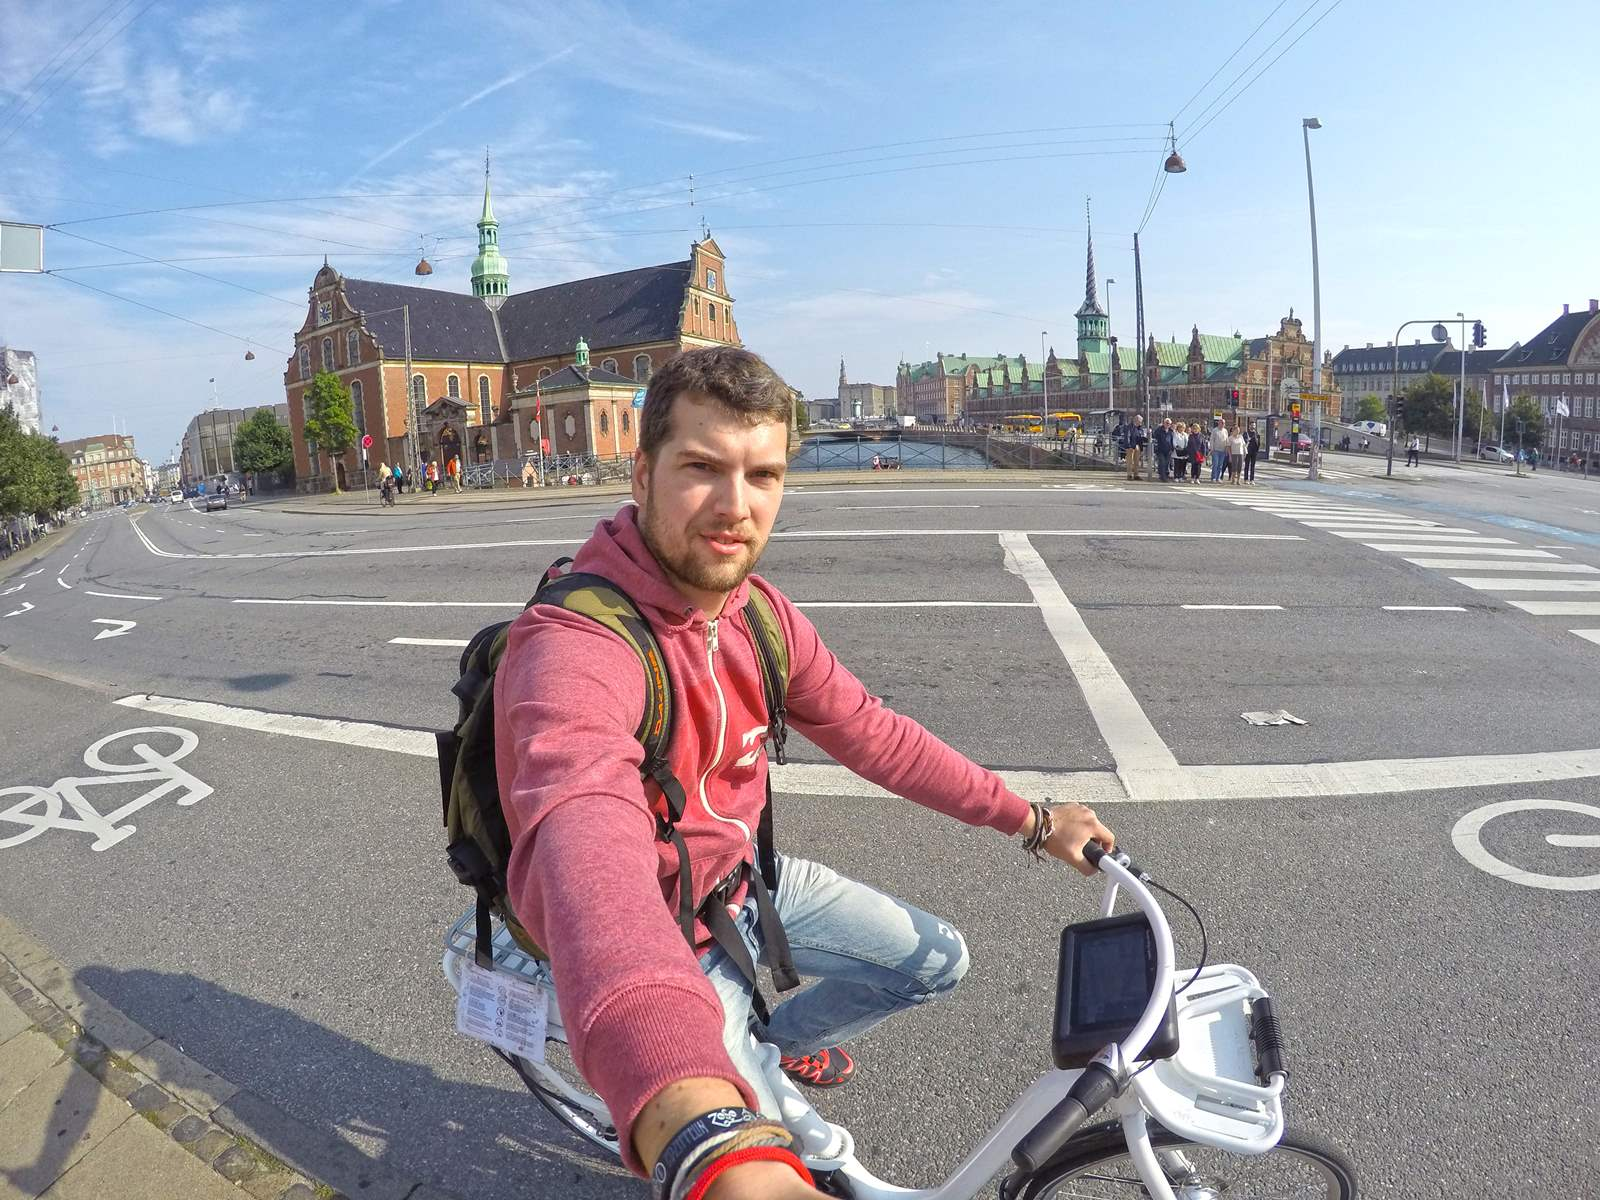 Riding an electric bike in Copenhagen